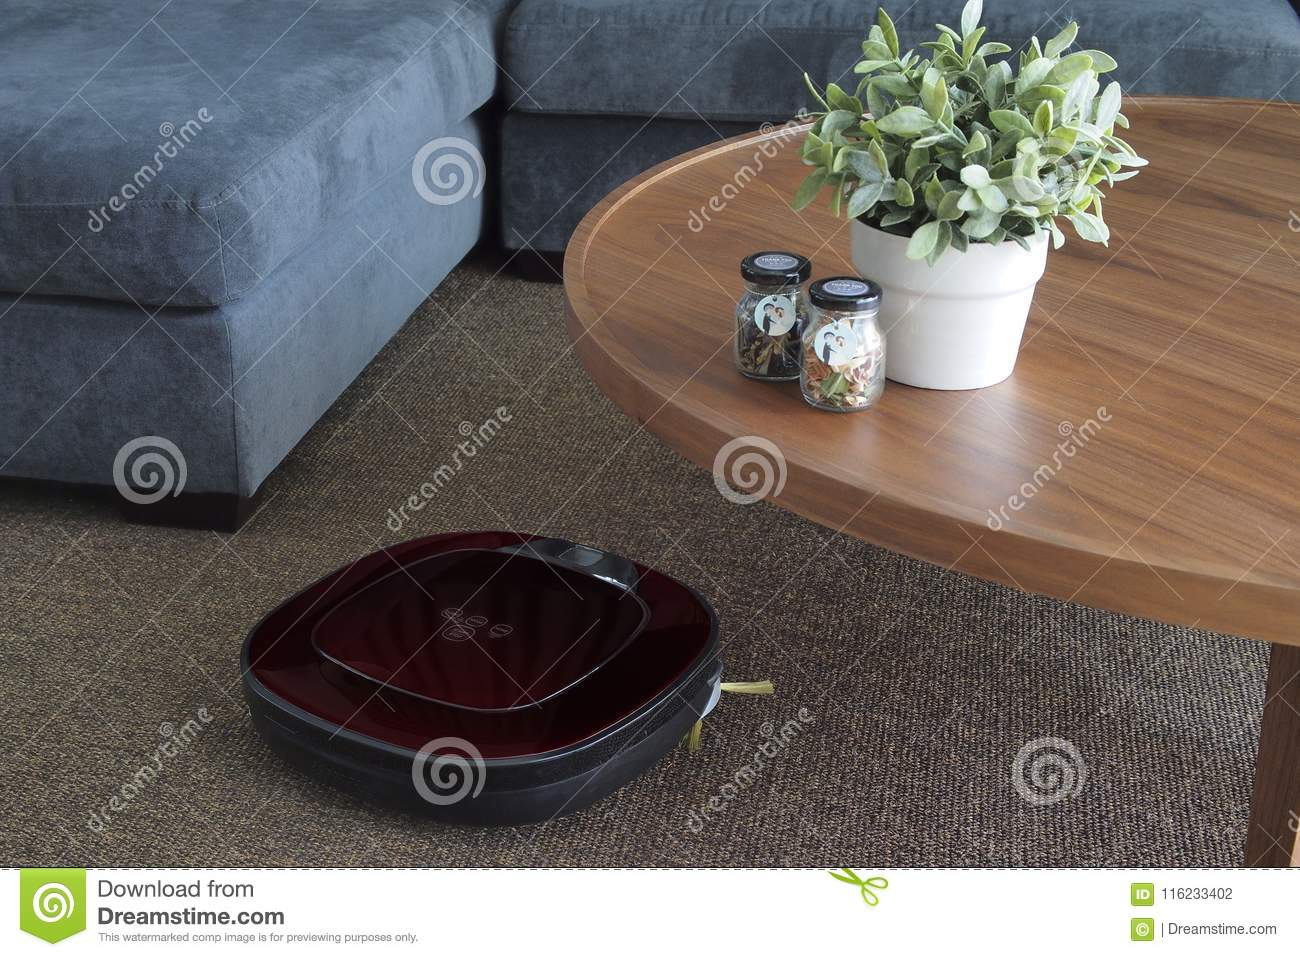 Robotic Vacuum Cleaner On Carpet In Living Room Stock Photo Image